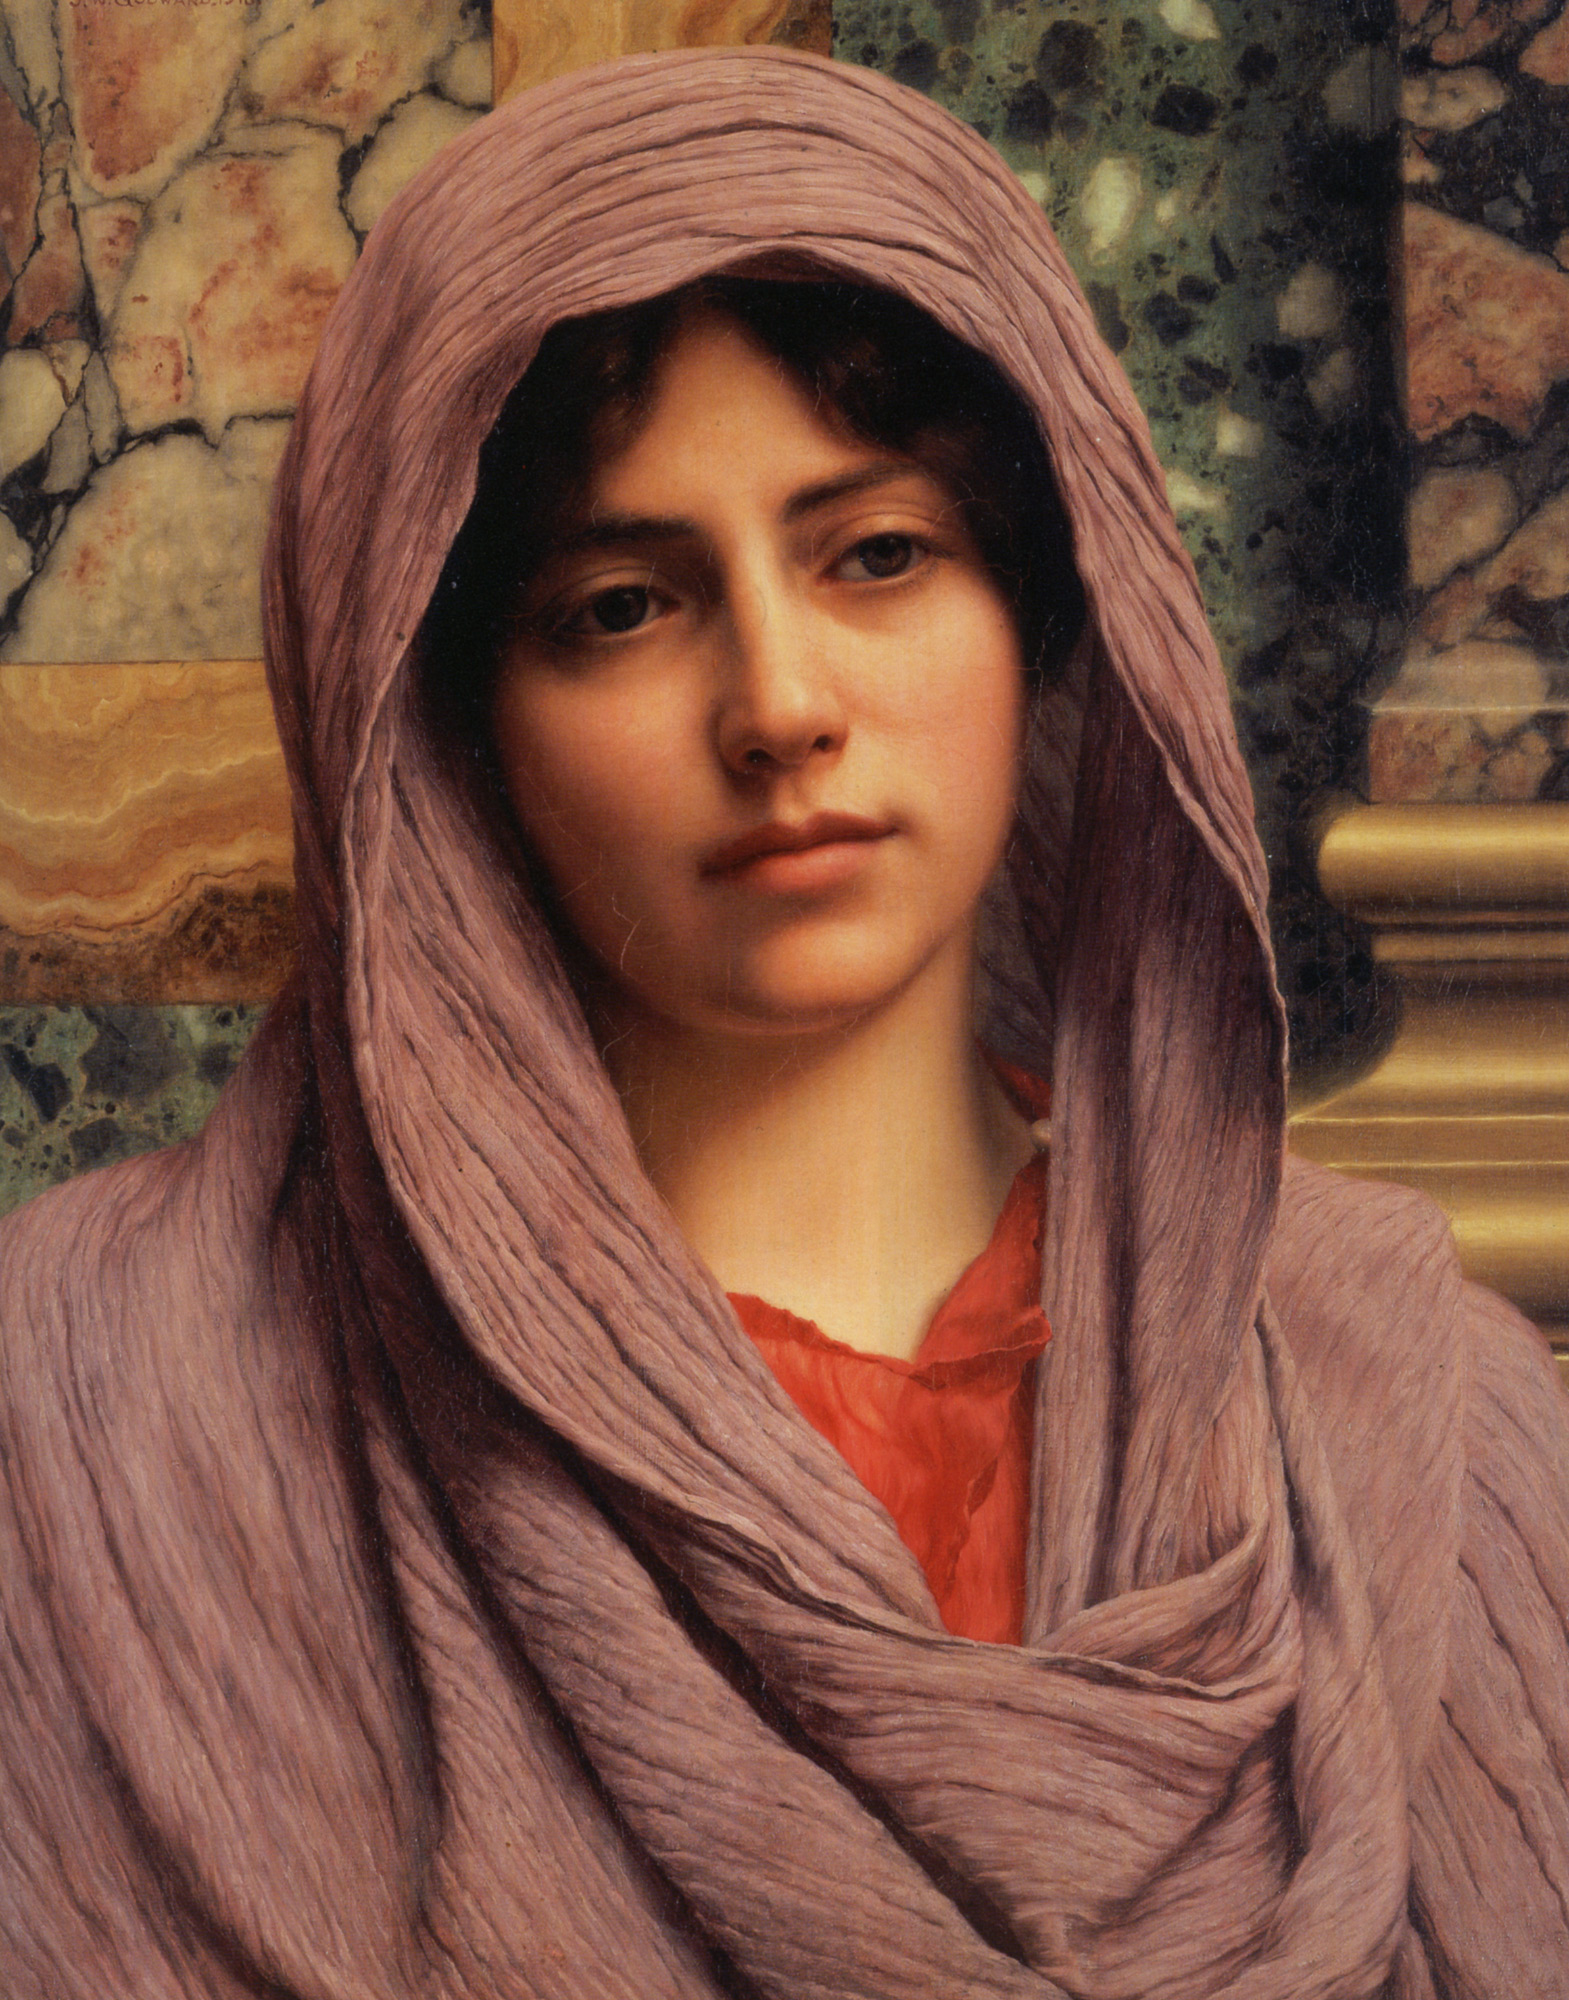 Lycinna by John William Godward, 1918